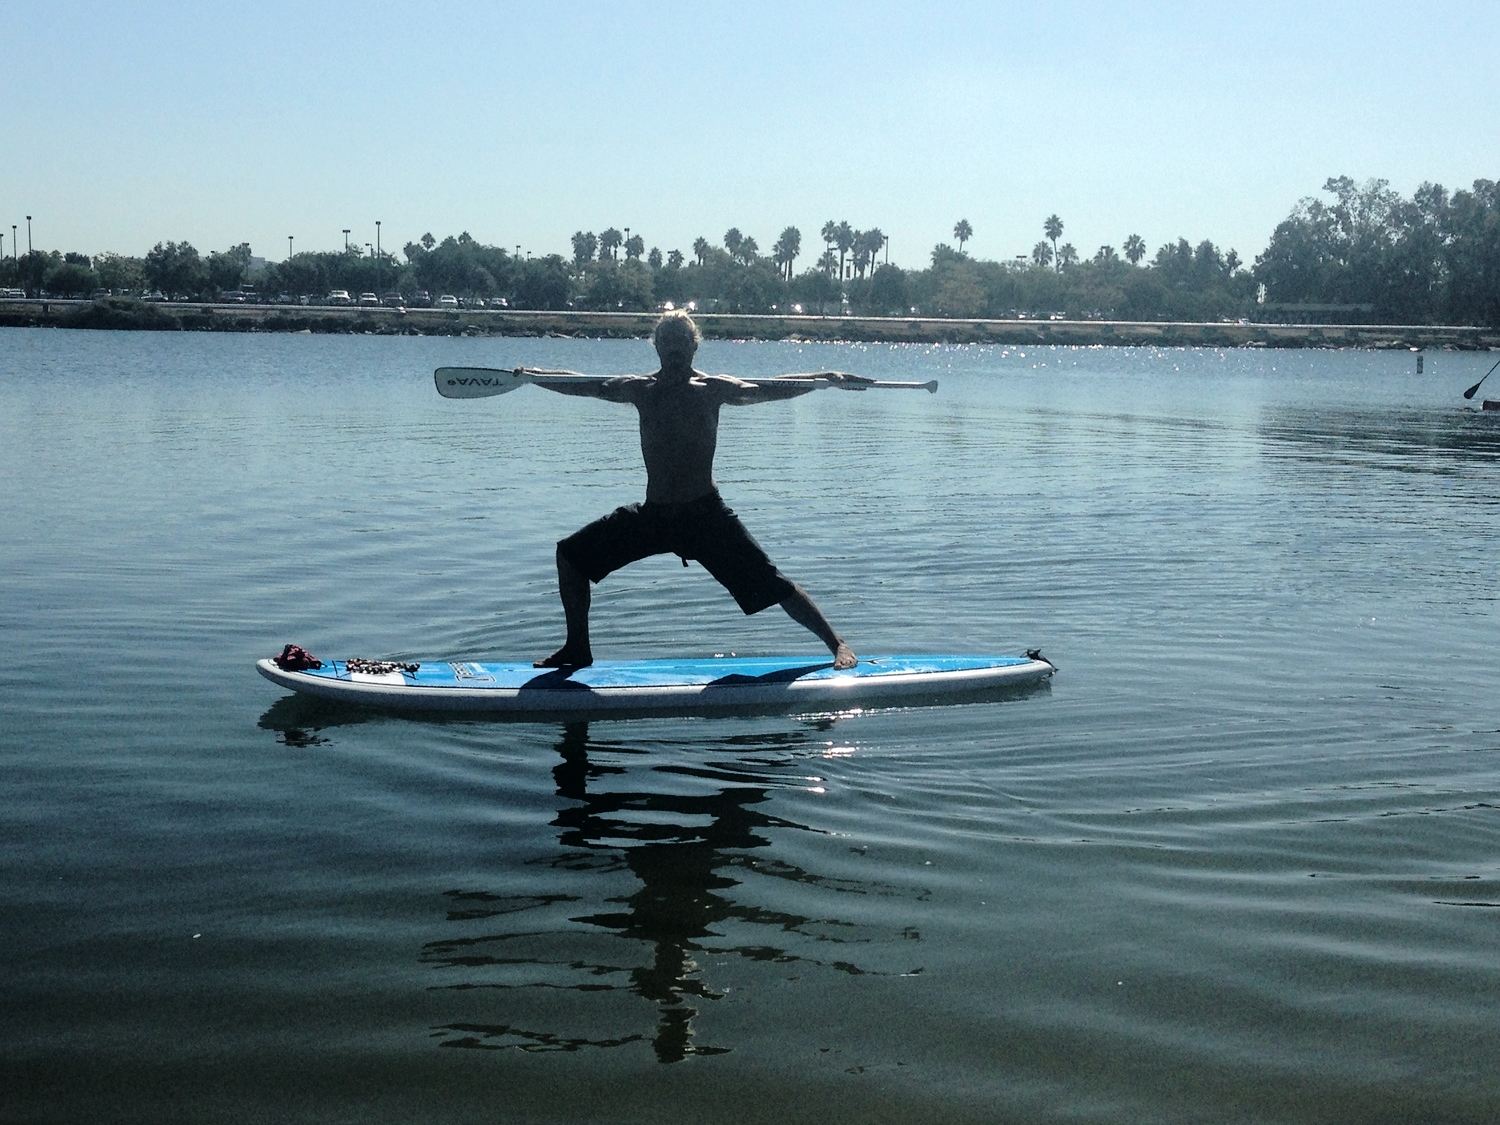 Dustin Swindle SUP Yoga Instructor